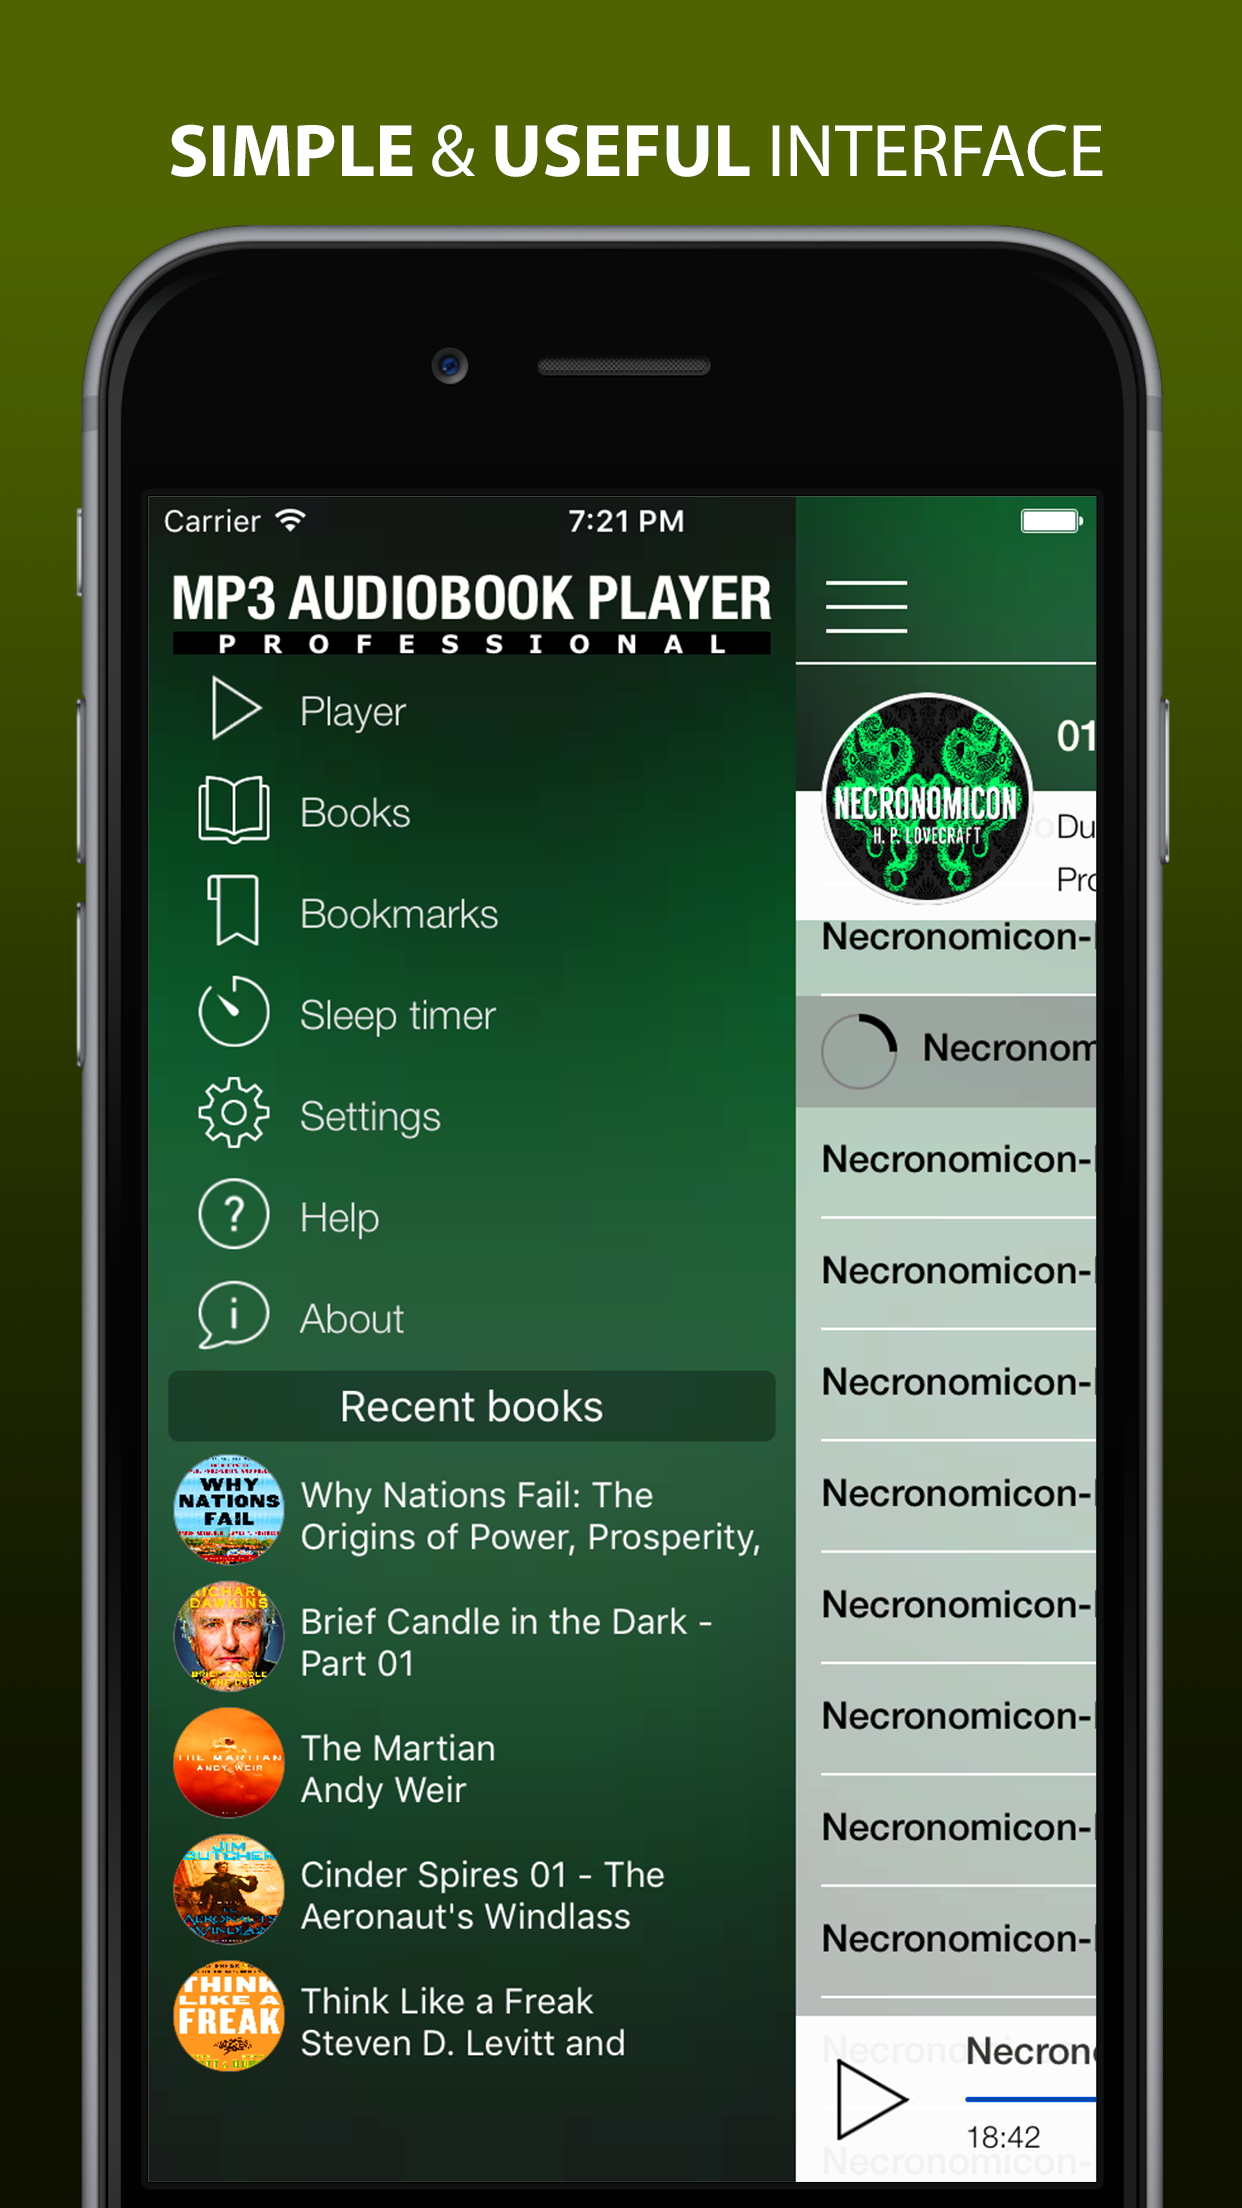 MP3 Audiobook Player is a convenient app for listening MP3